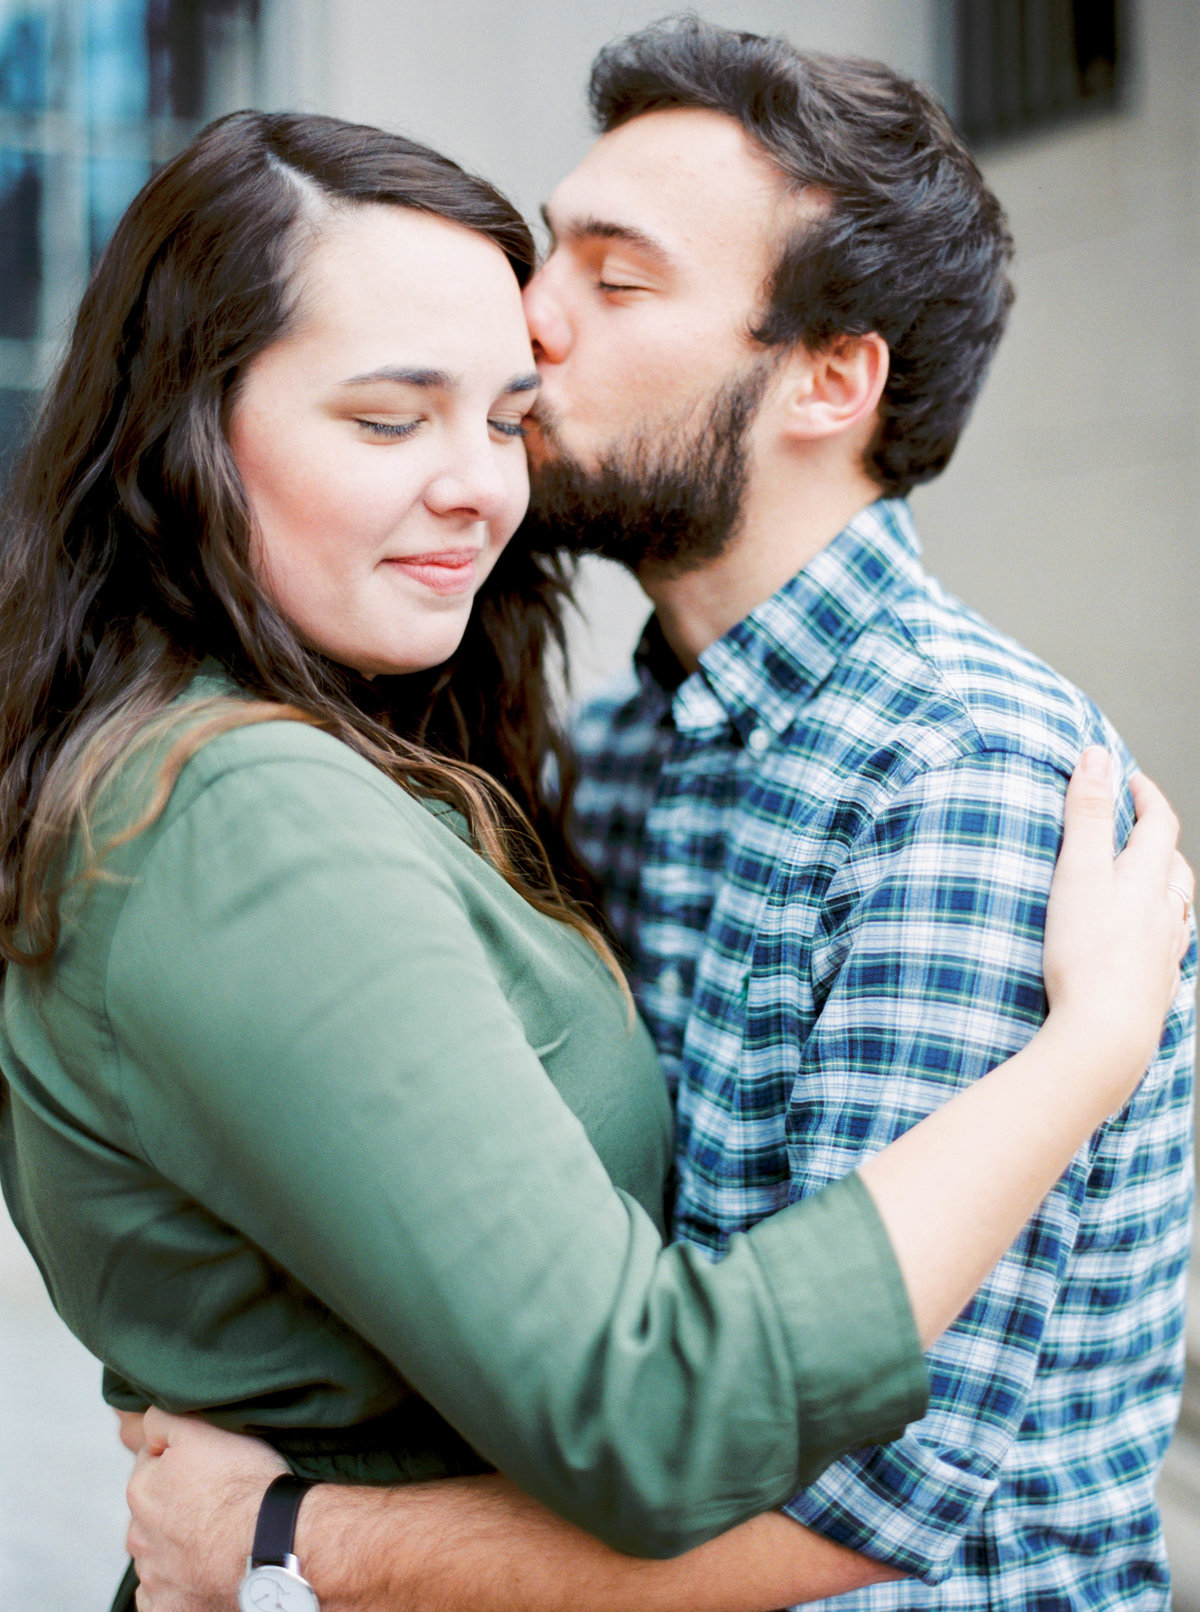 KlaireDixius_FineArtWeddingPhotography_Charlottesville_Virginia_Engagement_LukeAshley_Film-41